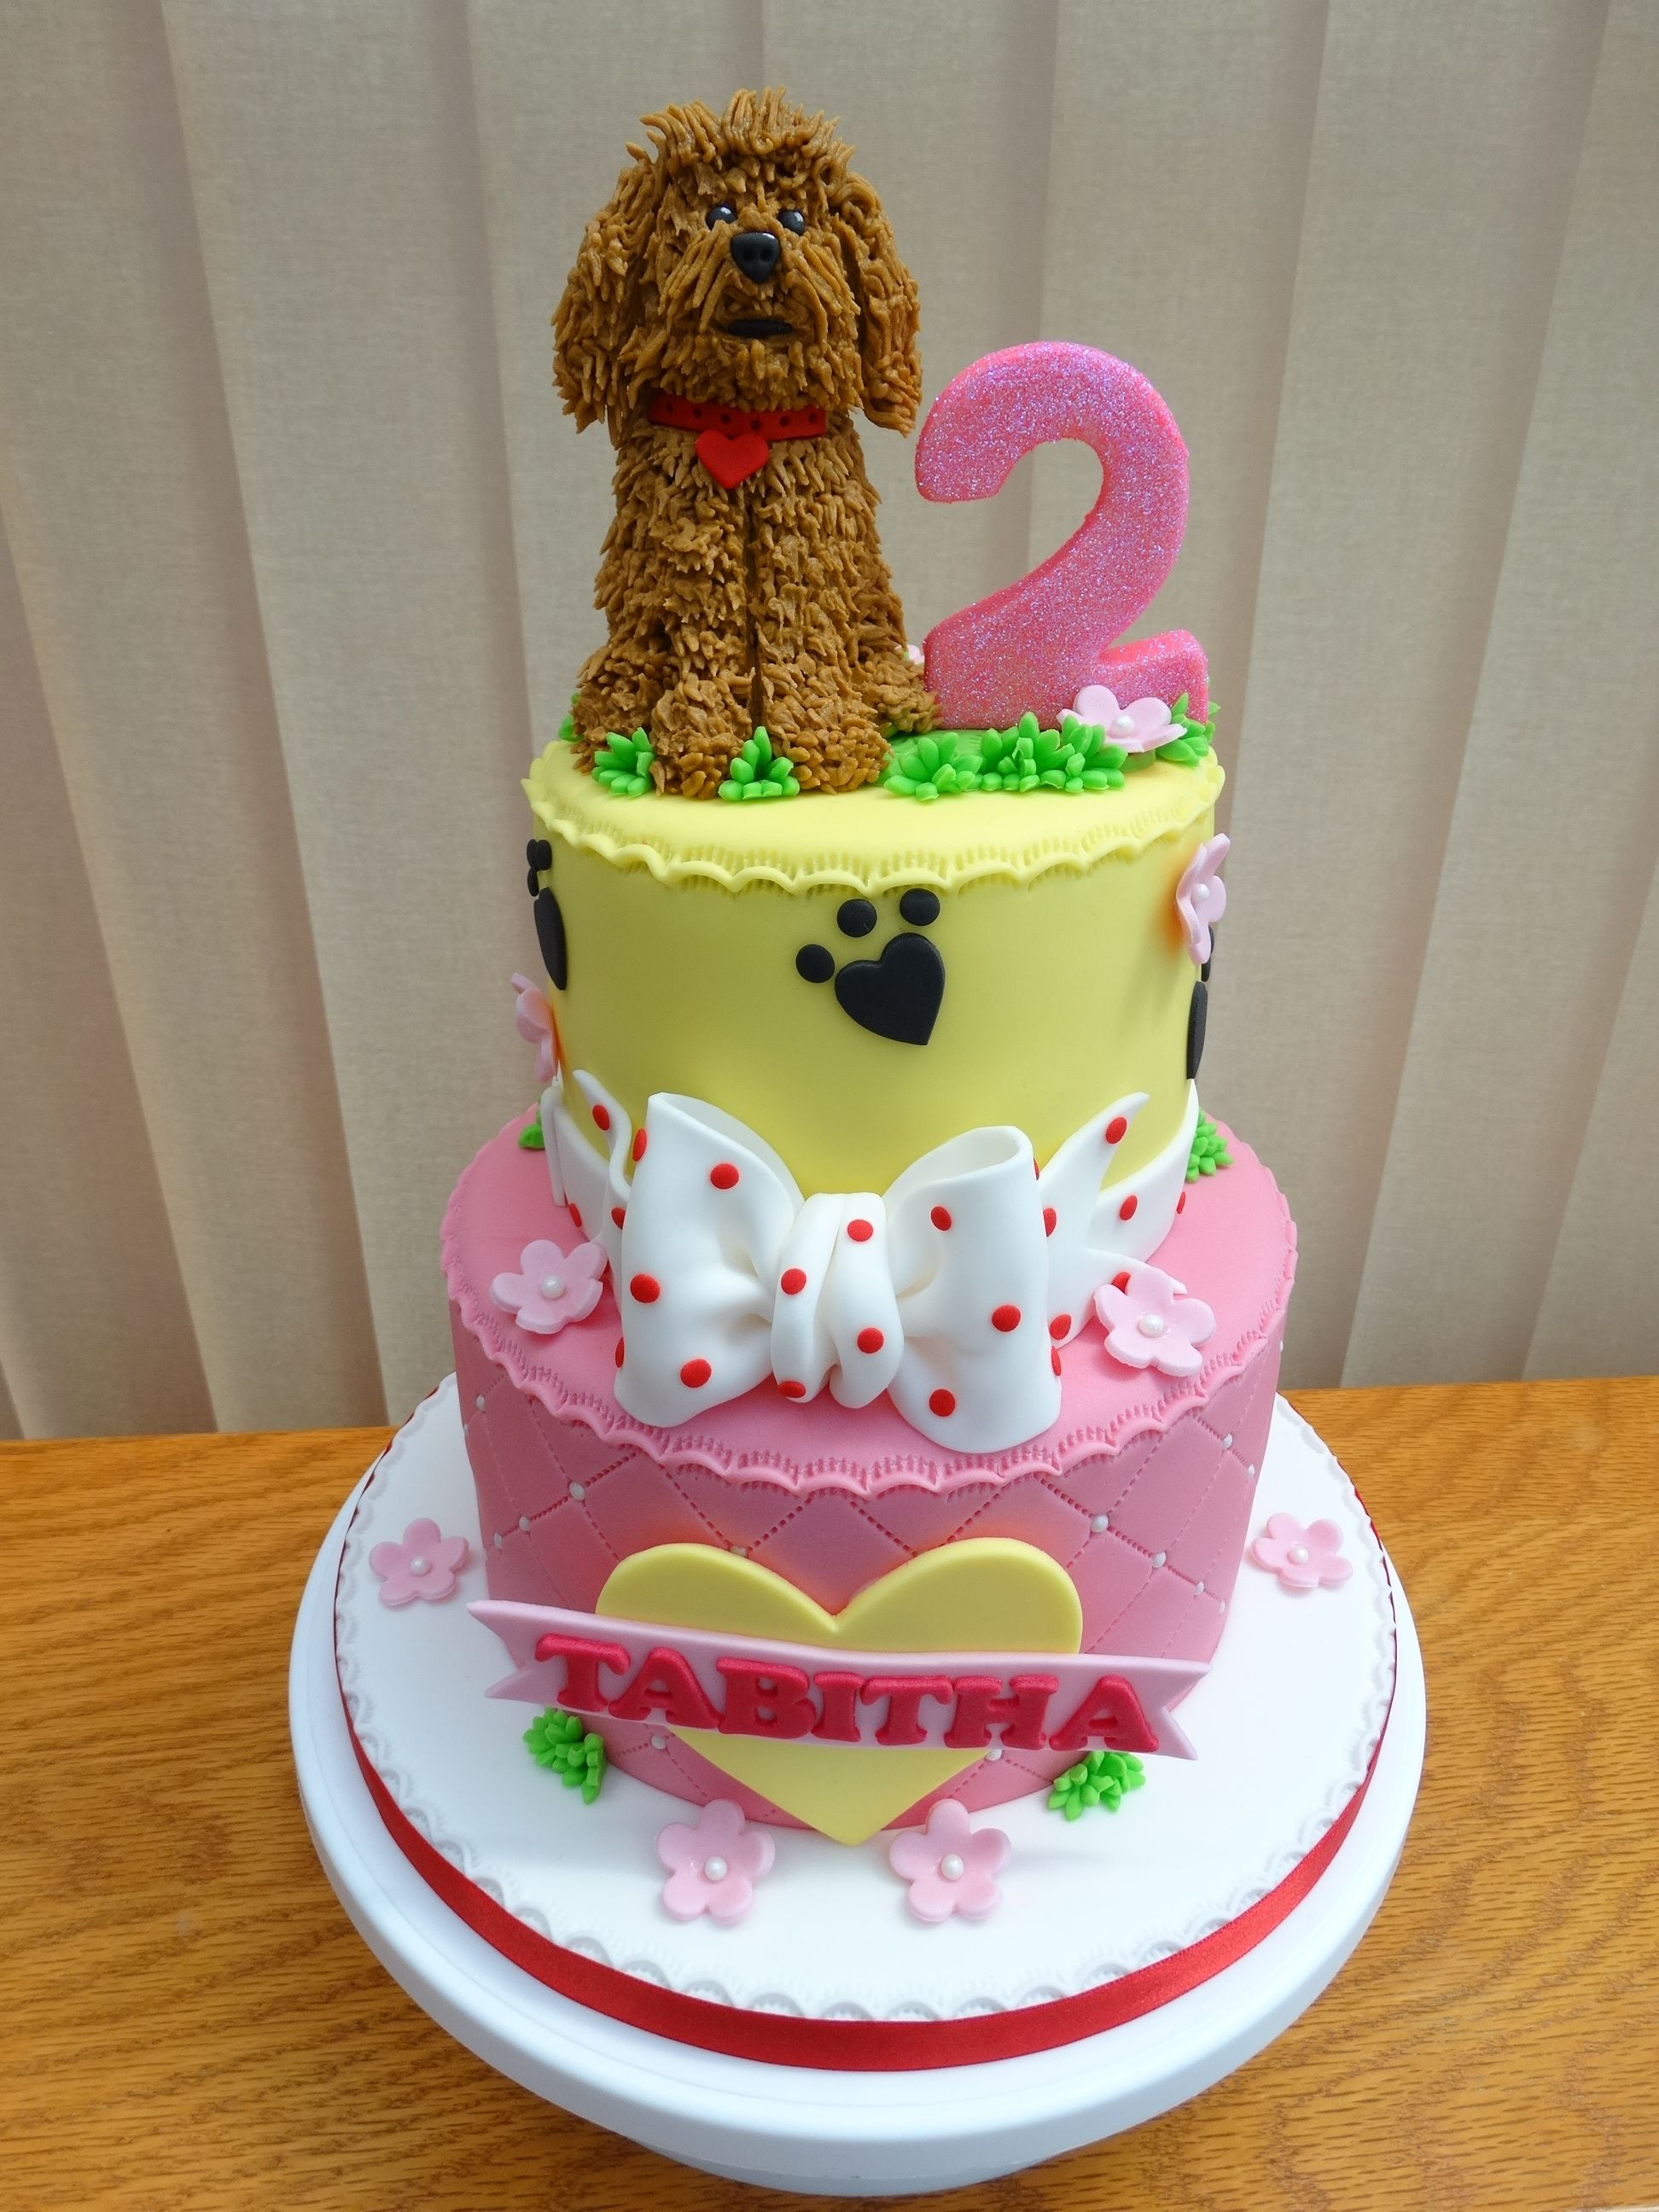 Excellent Waffle The Wonder Dog Cake Xmcx Dog Cakes Dog Birthday Cake Personalised Birthday Cards Paralily Jamesorg